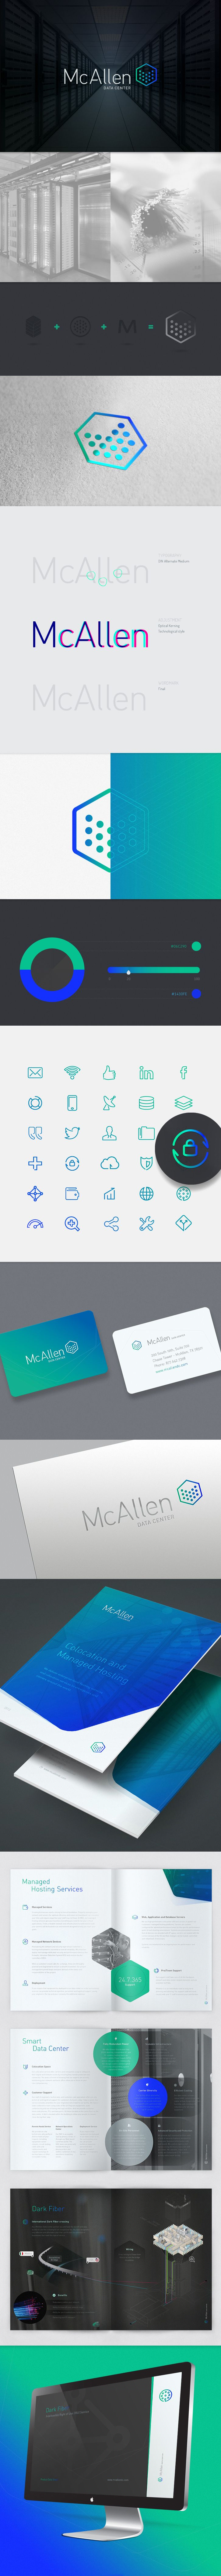 McAllen Data Center Branding  McAllen DC is a company that offers hosting service within their data center for telecom operators. Stands out for having an efficient infrastructure and be in the vanguard in technological issues. We developed a strong corporate brand, based on trust, stability and technological advances.